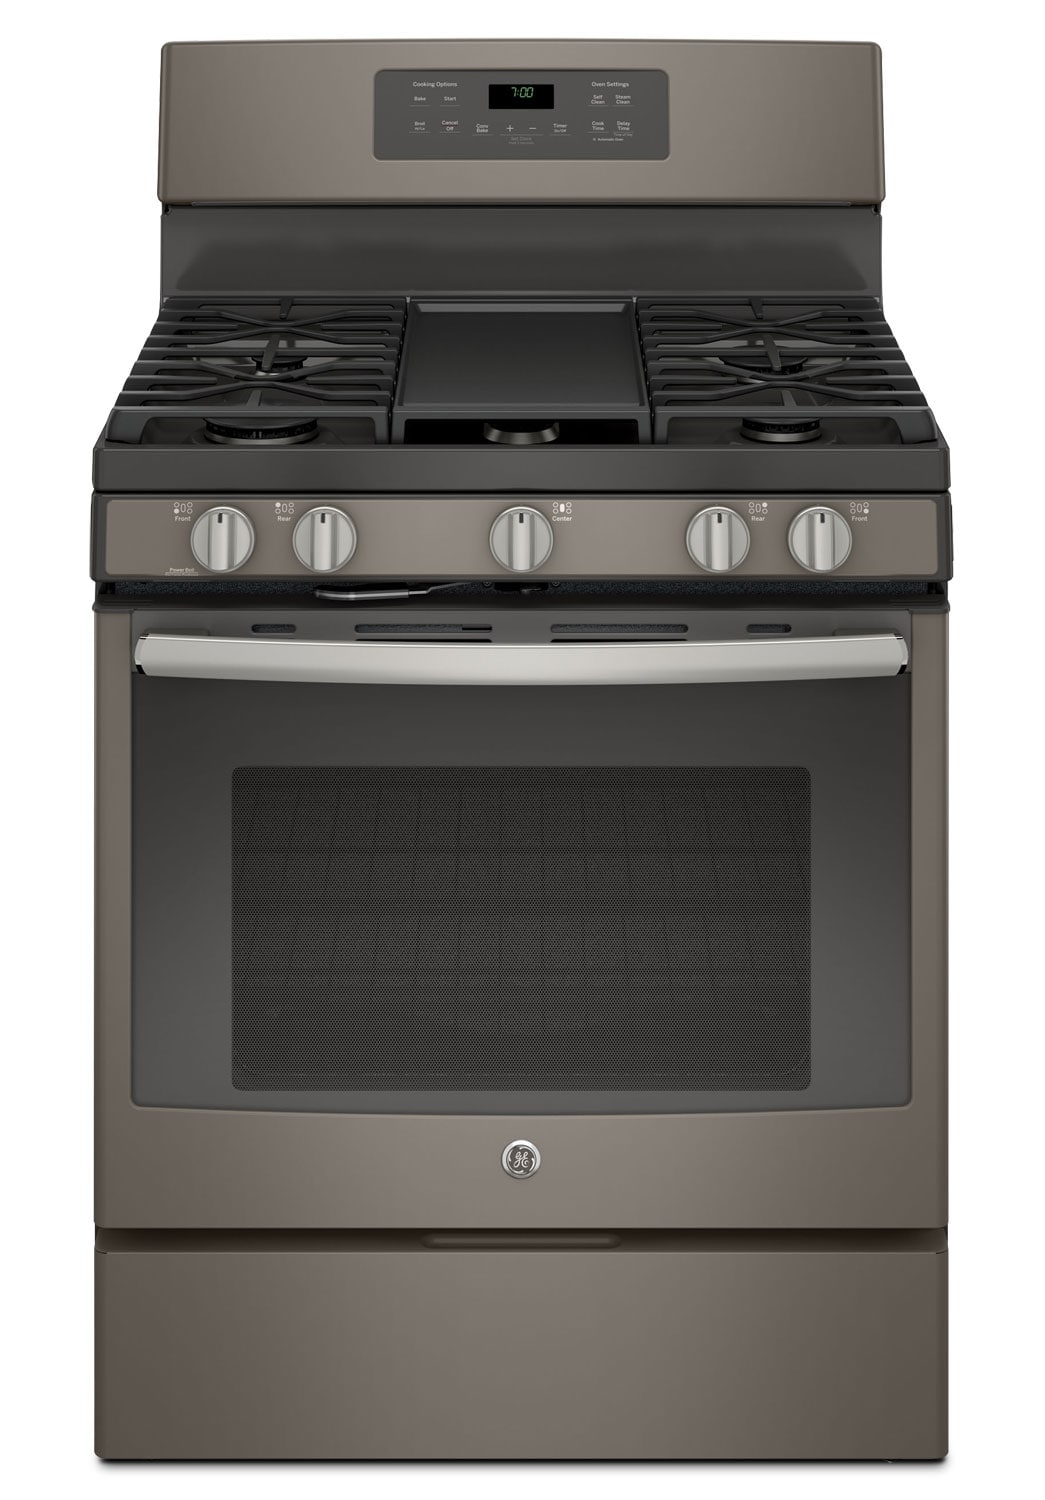 Cooking Products - GE 5.0 Cu. Ft. Freestanding Gas Range – JCGB700EEJES